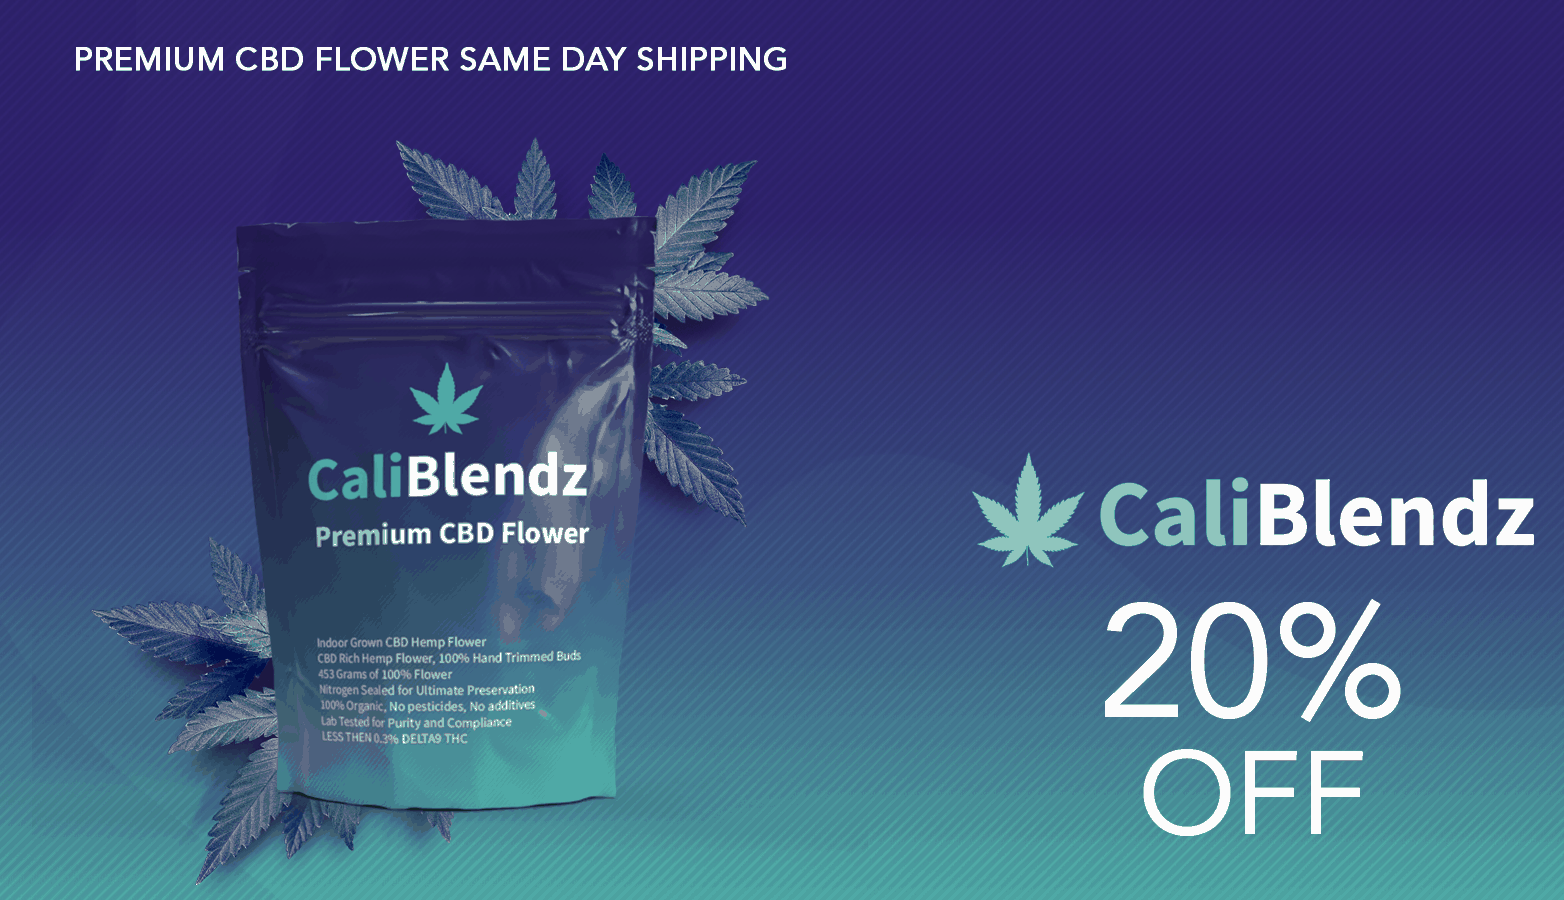 CaliBlendz CBD Coupon Code Offer Website